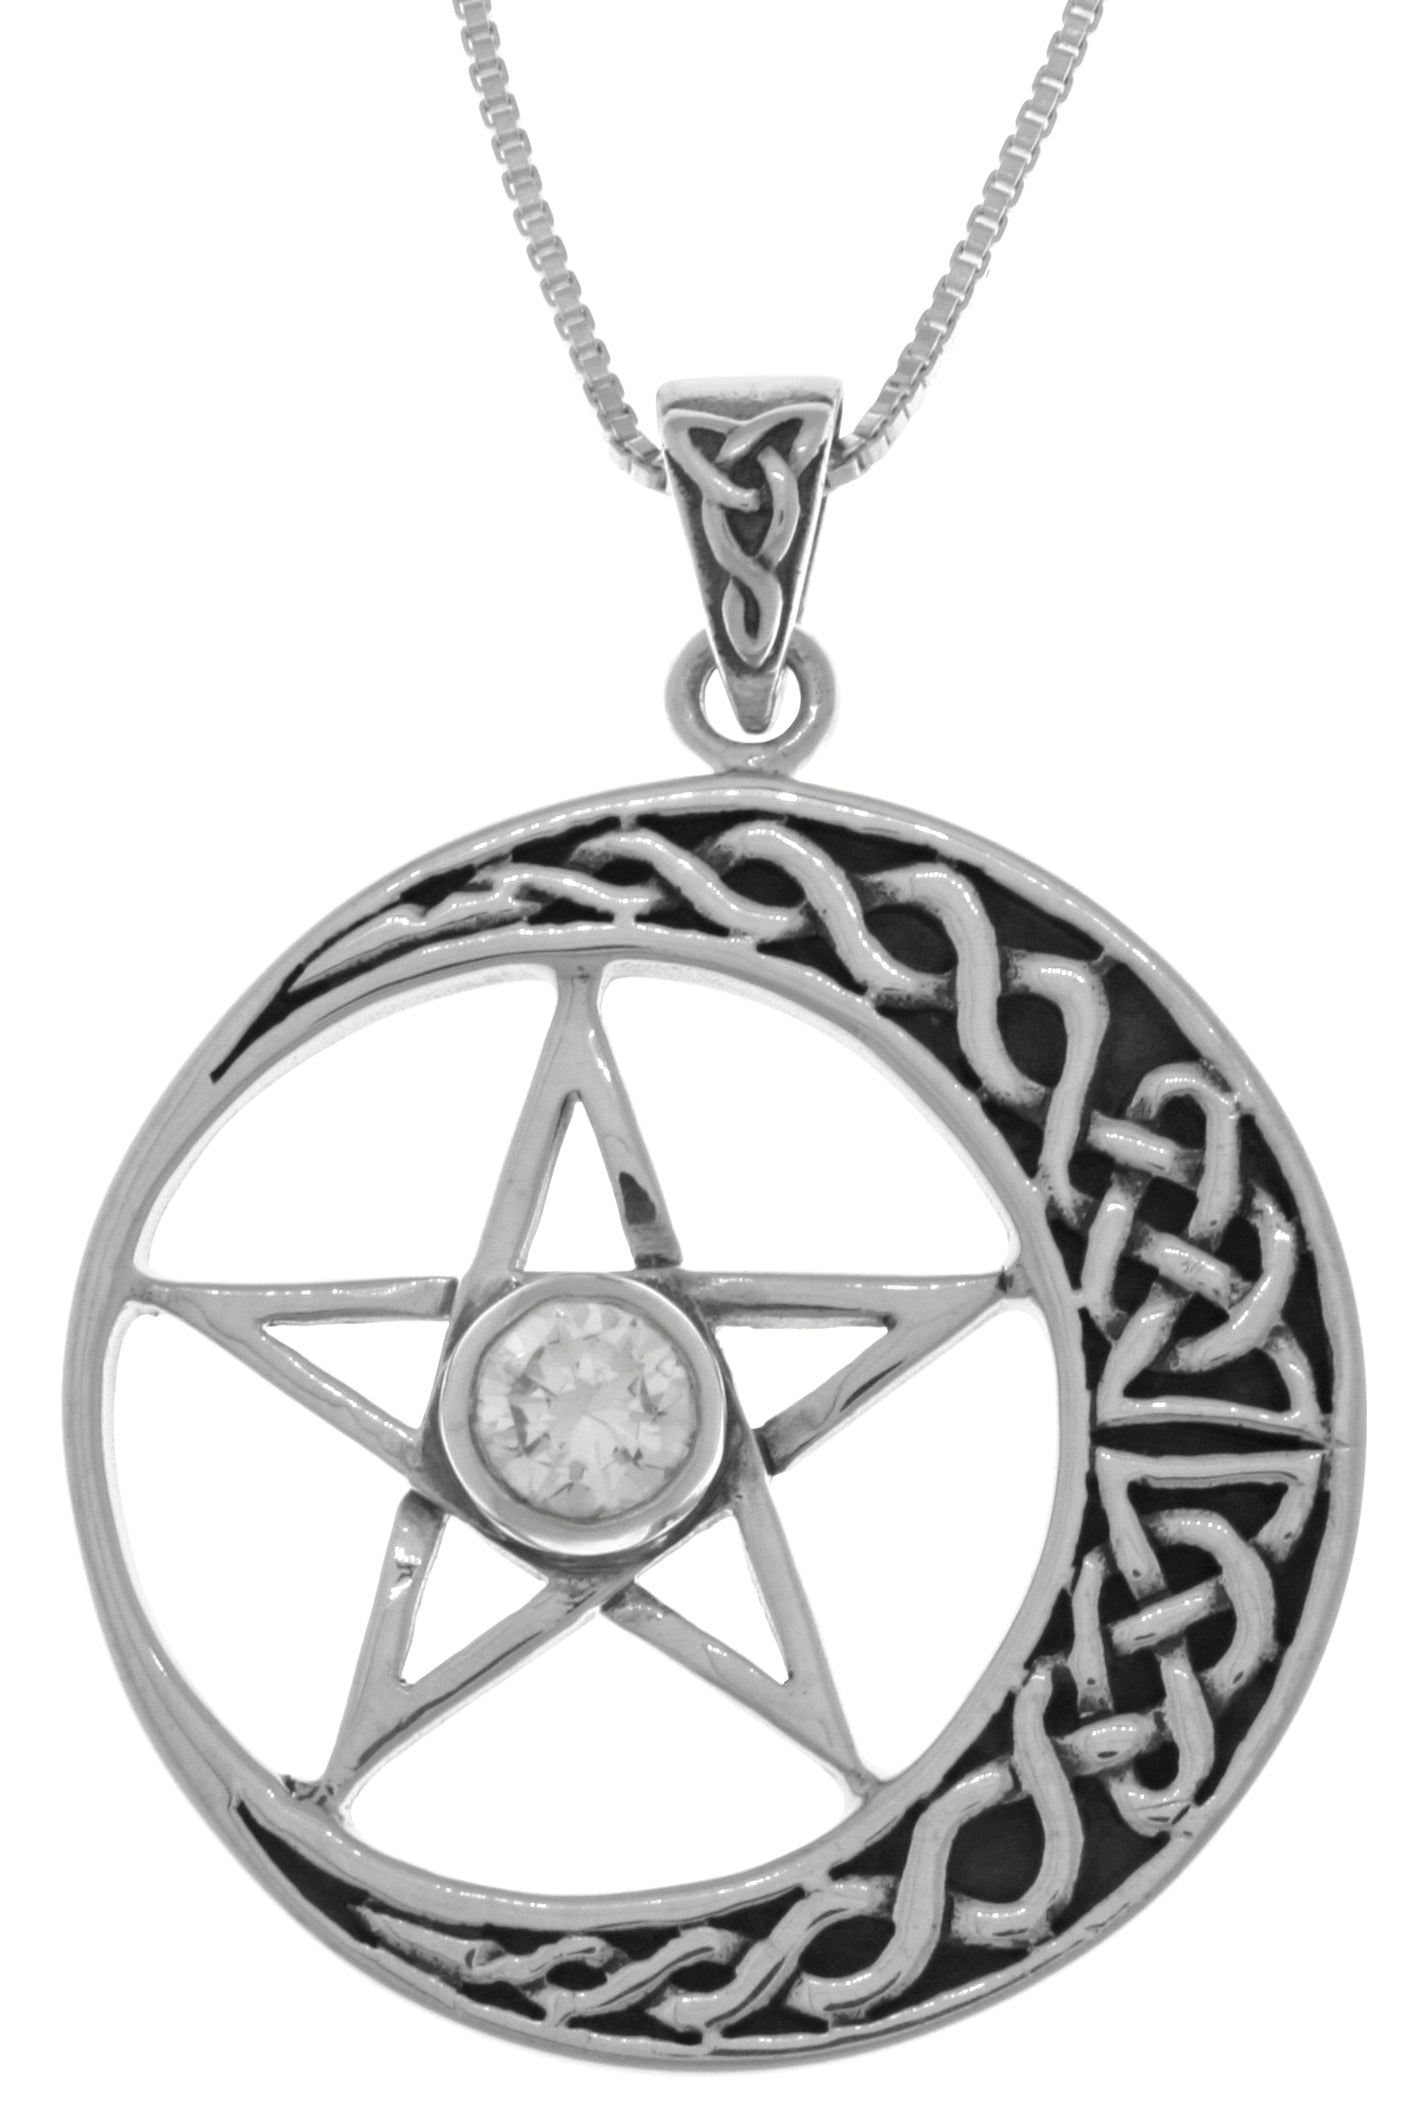 Jewelry Trends Sterling Silver Celtic Moon and Star Pentacle Pendant with CZ on 18 Inch Box Chain Necklace